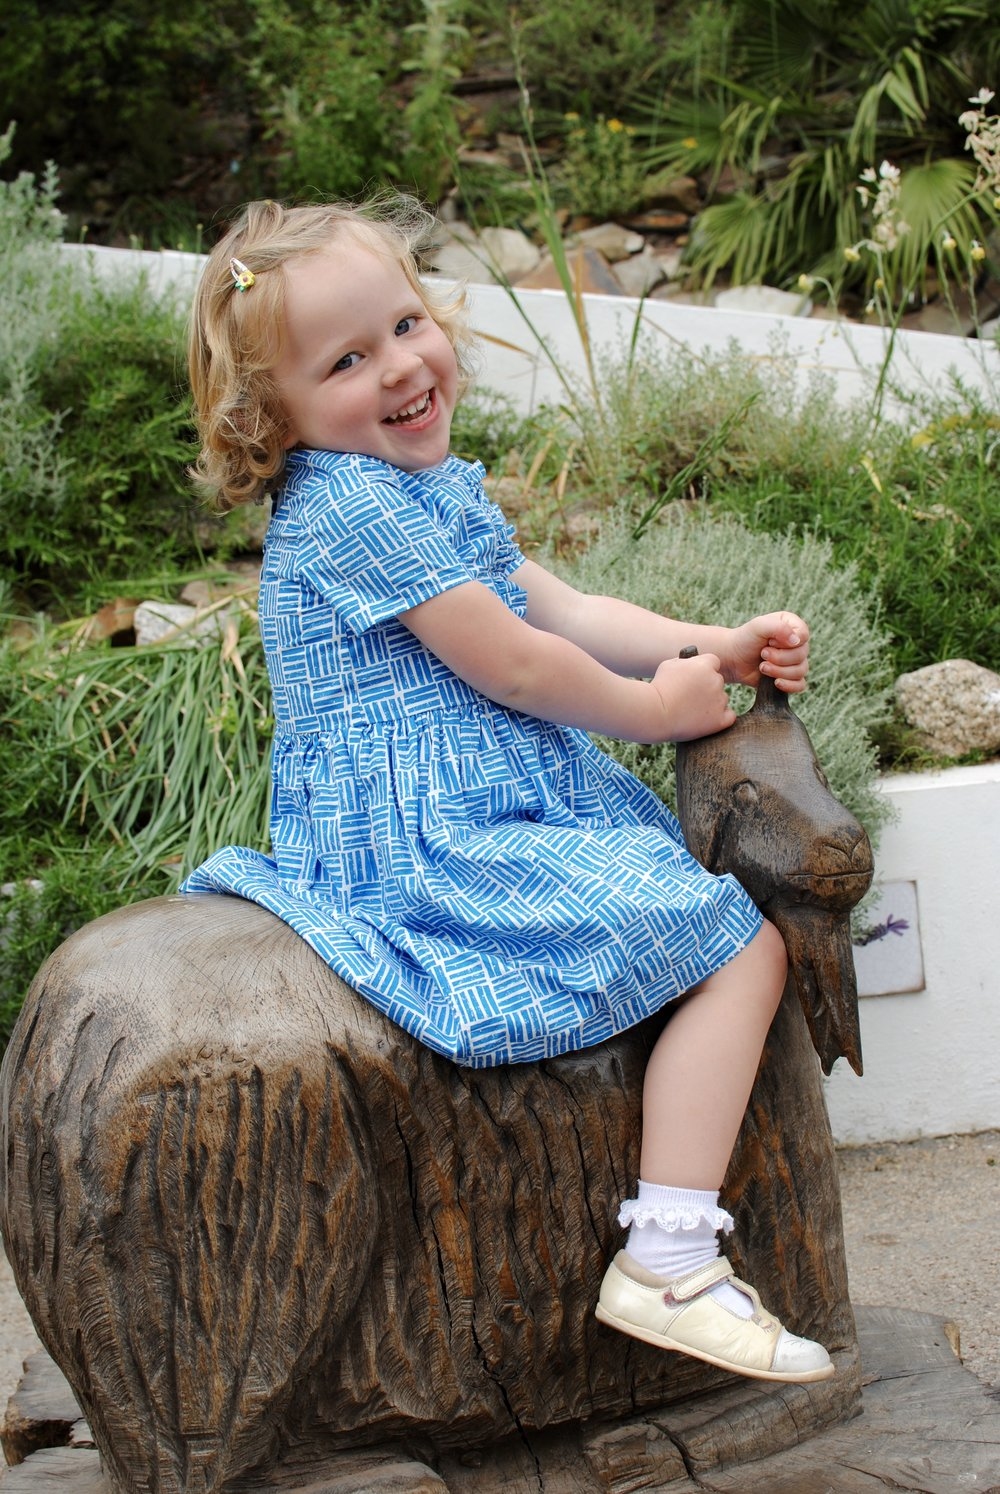 Three Billy Goats Gruff  is the latest favourite so Sienna was so excited to find this sculpture!